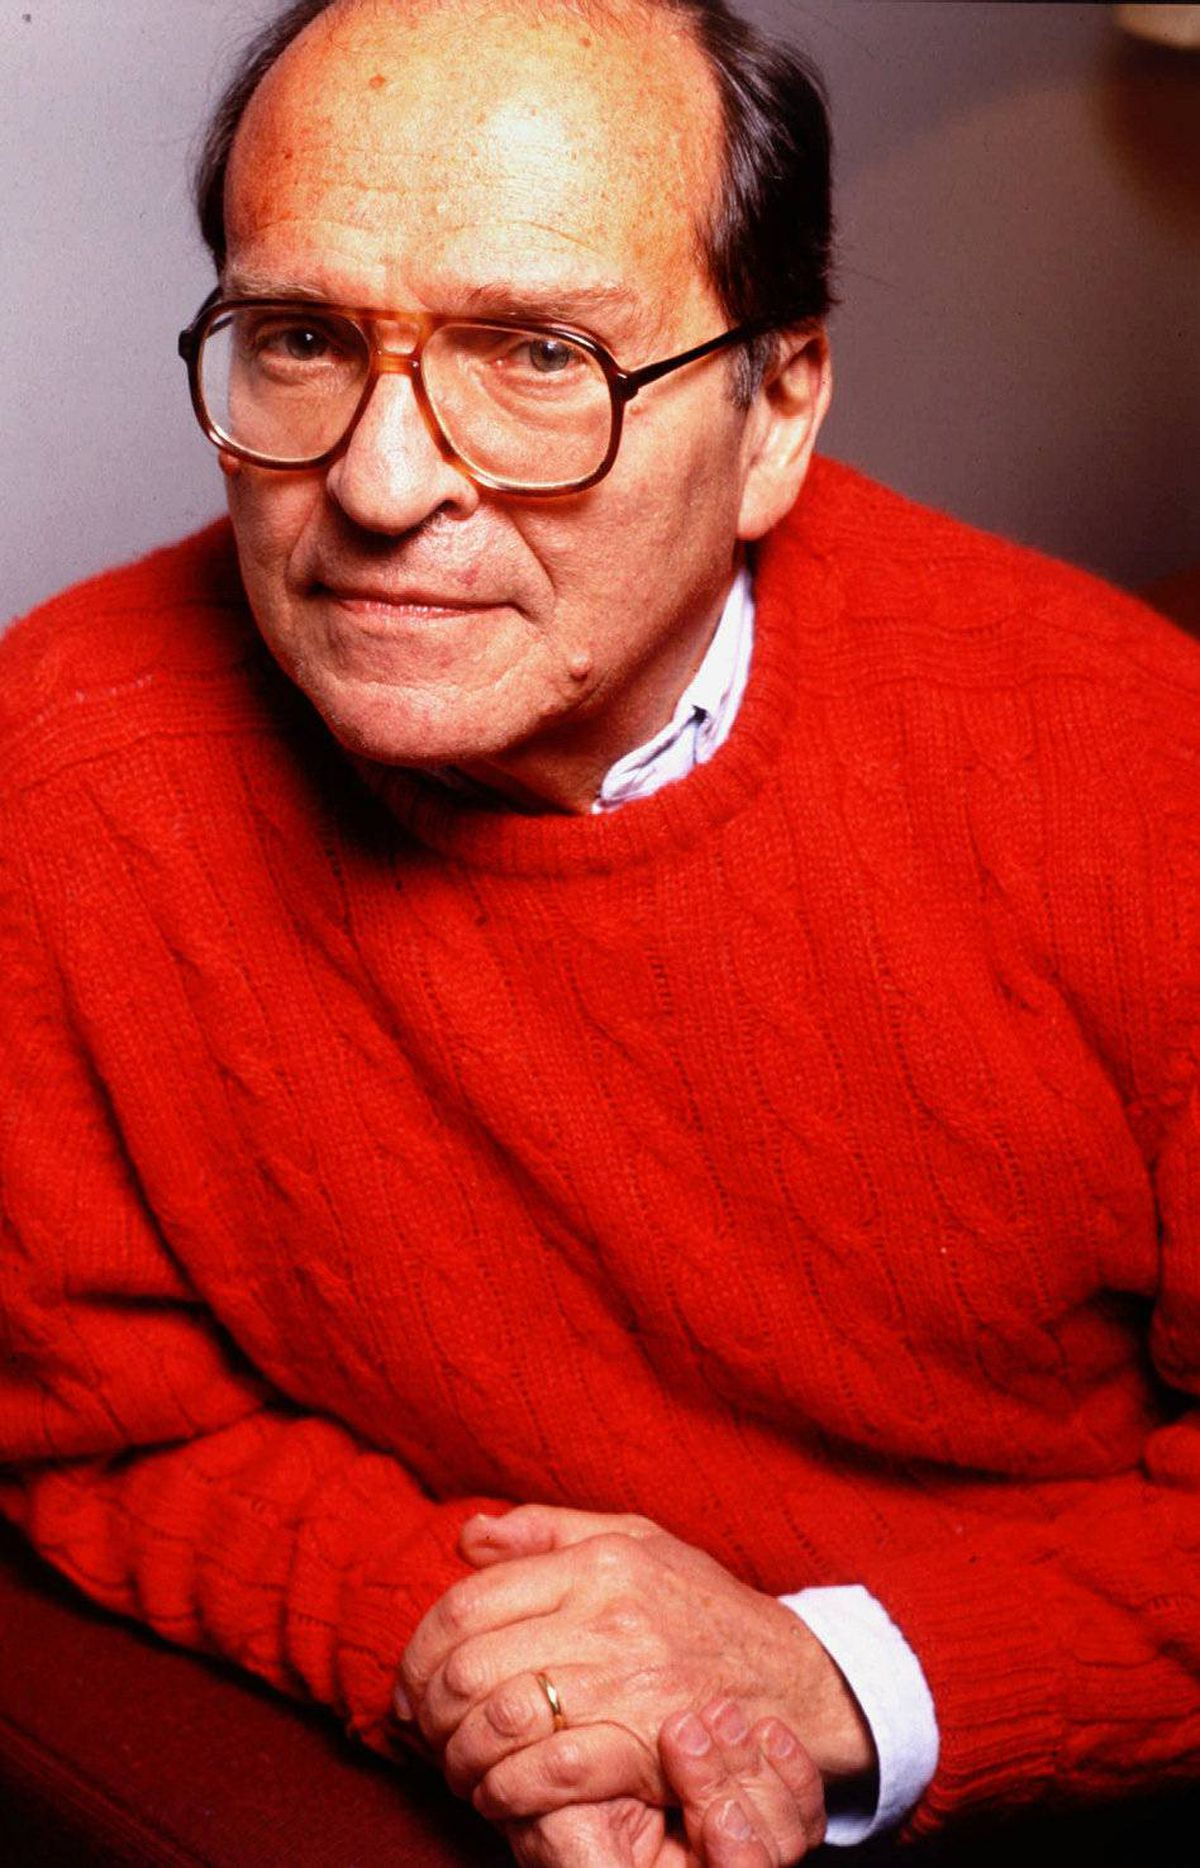 """Director Sidney Lumet dies of lymphoma at age 86 """"If you prayed to inhabit a character, Sidney was the priest who listened to your prayers, helped them come true."""" So said Al Pacino, of the prolific New York filmmaker who not only earned four Oscar nominations (12 Angry Men, Dog Day Afternoon, Network and The Verdict), but the respect of his actors."""